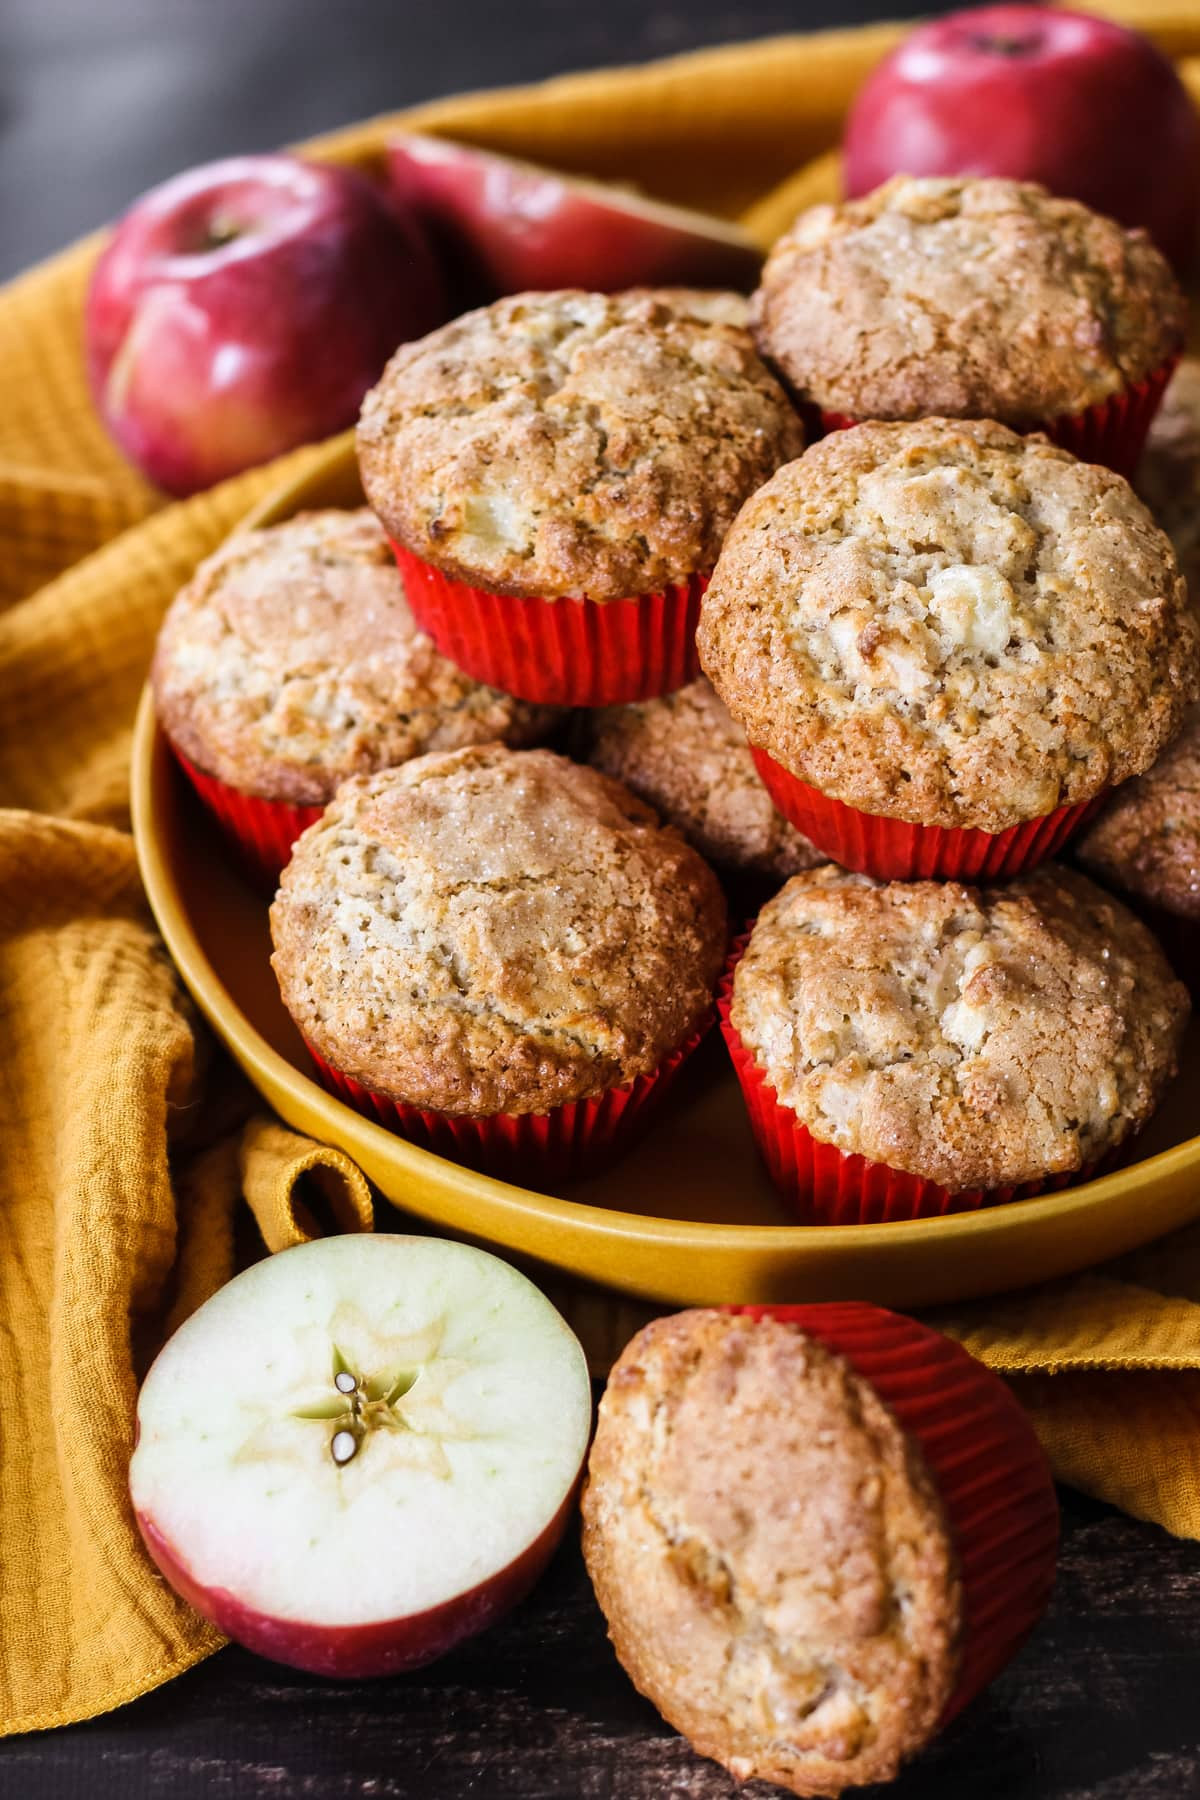 a mustard yellow bowl filled with stacked baked maple apple muffins. in the background are red apples and a mustard yellow napkin